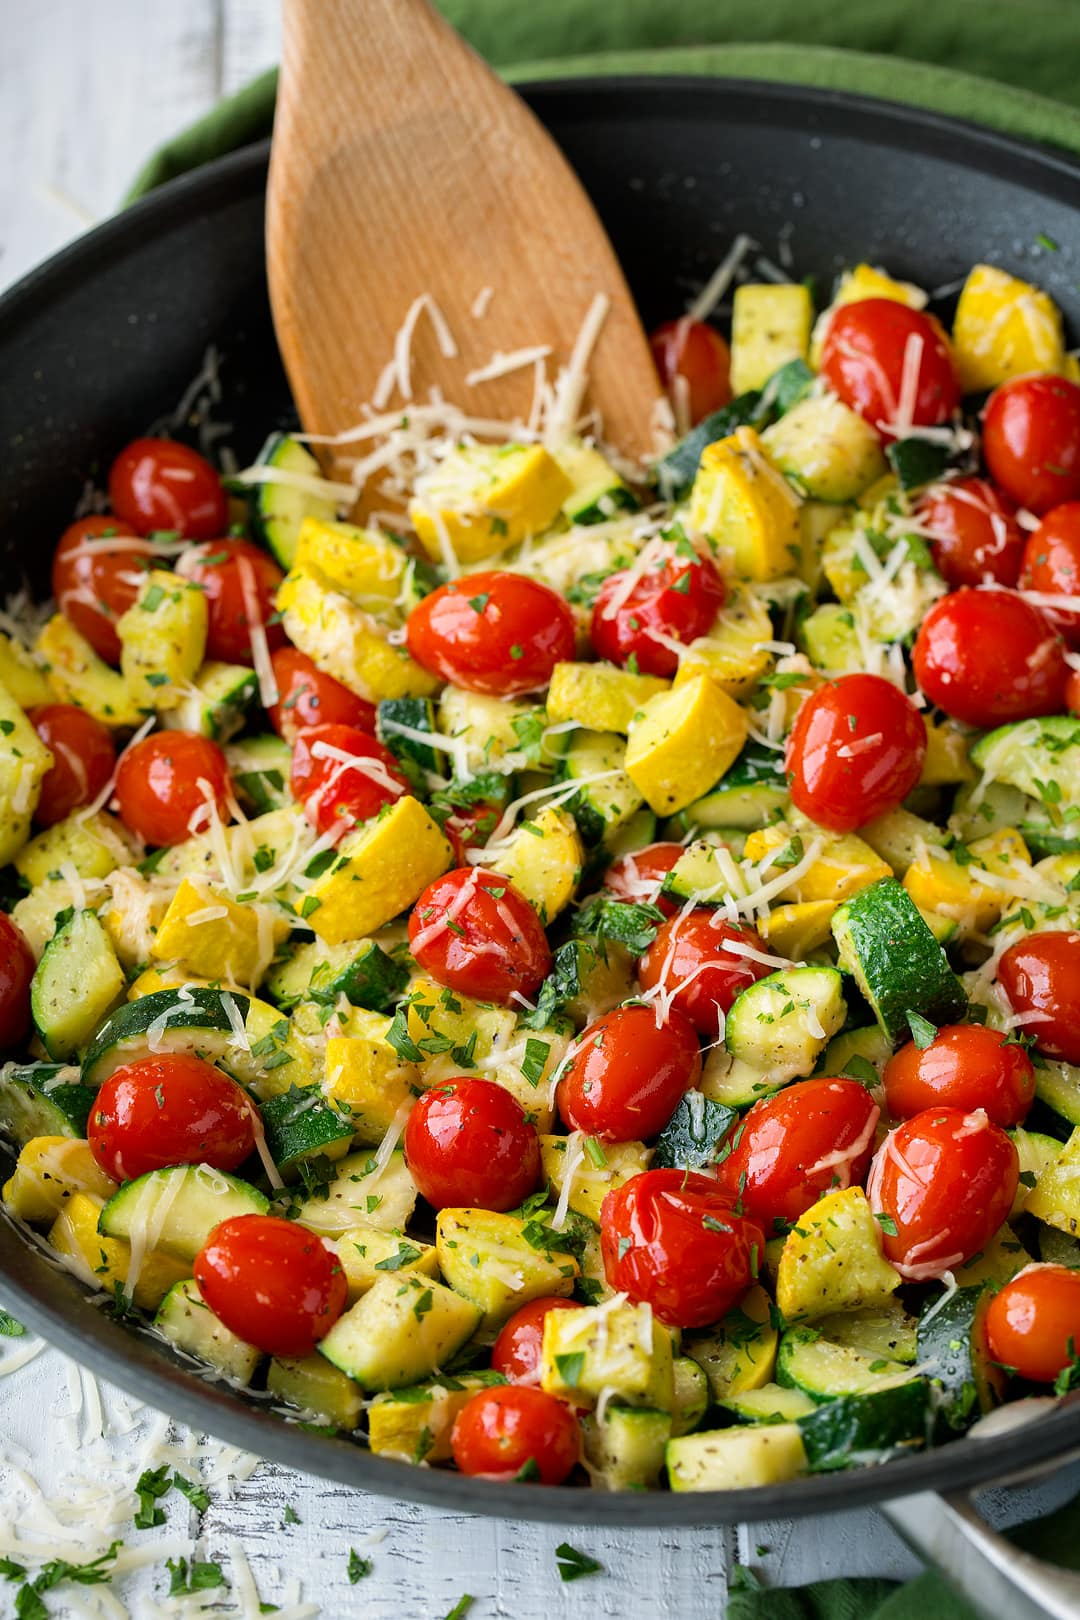 Skillet Garlic-Parmesan Zucchini Squash and Tomatoes